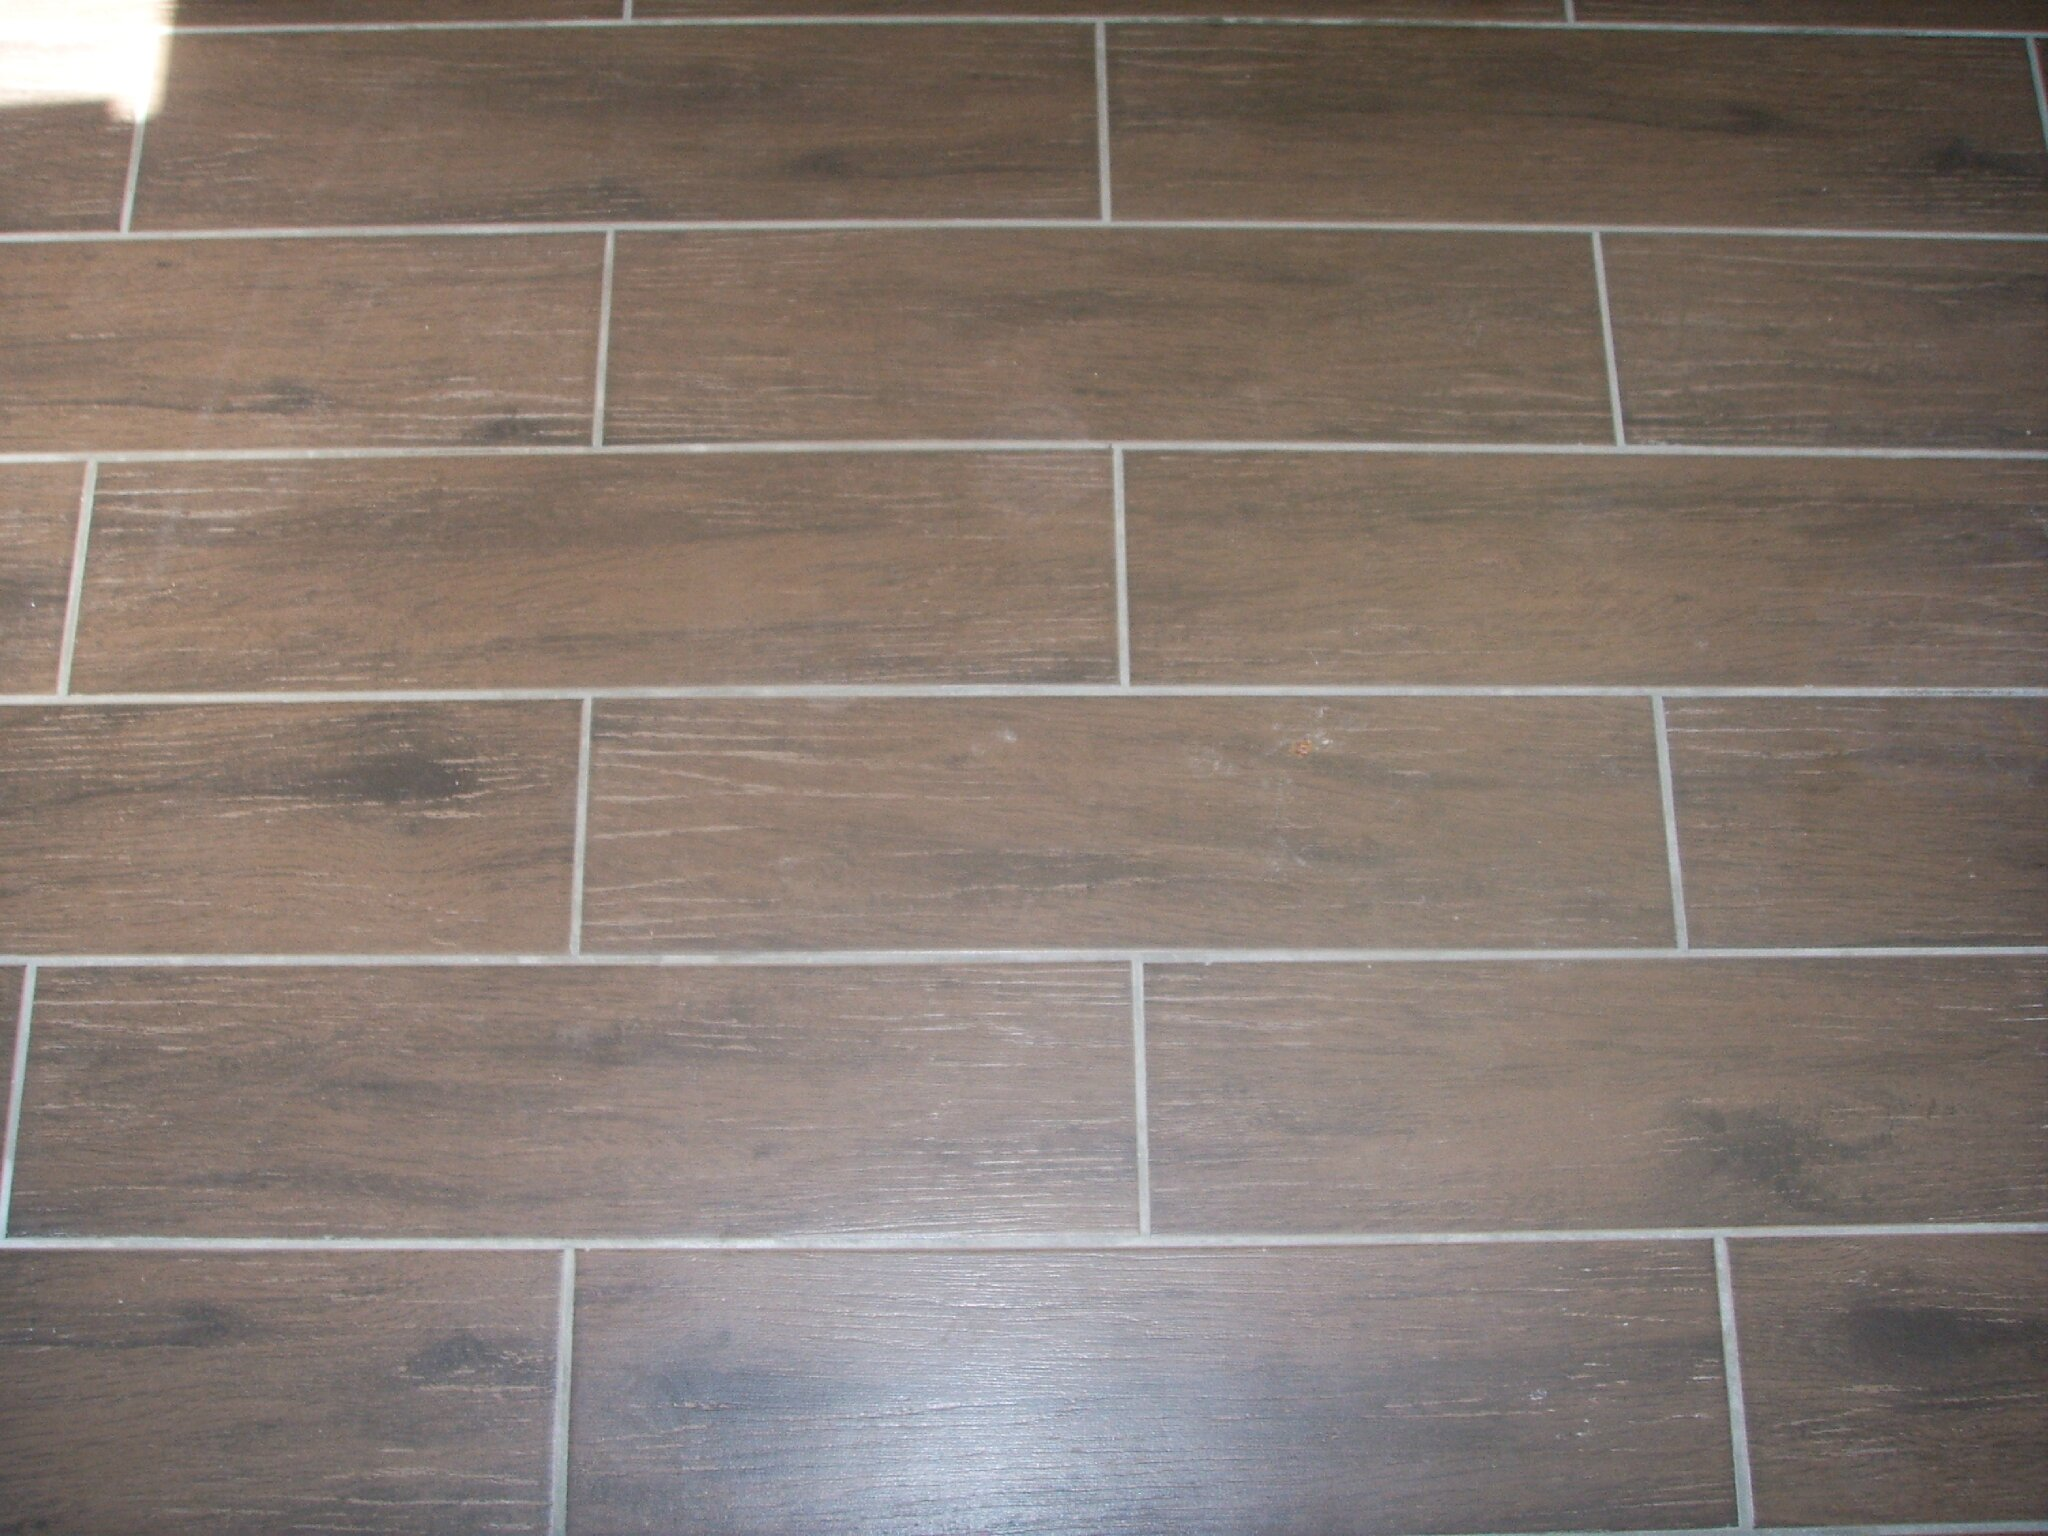 R novation le carrelage fine faible paisseur le - Pose de carrelage imitation parquet ...